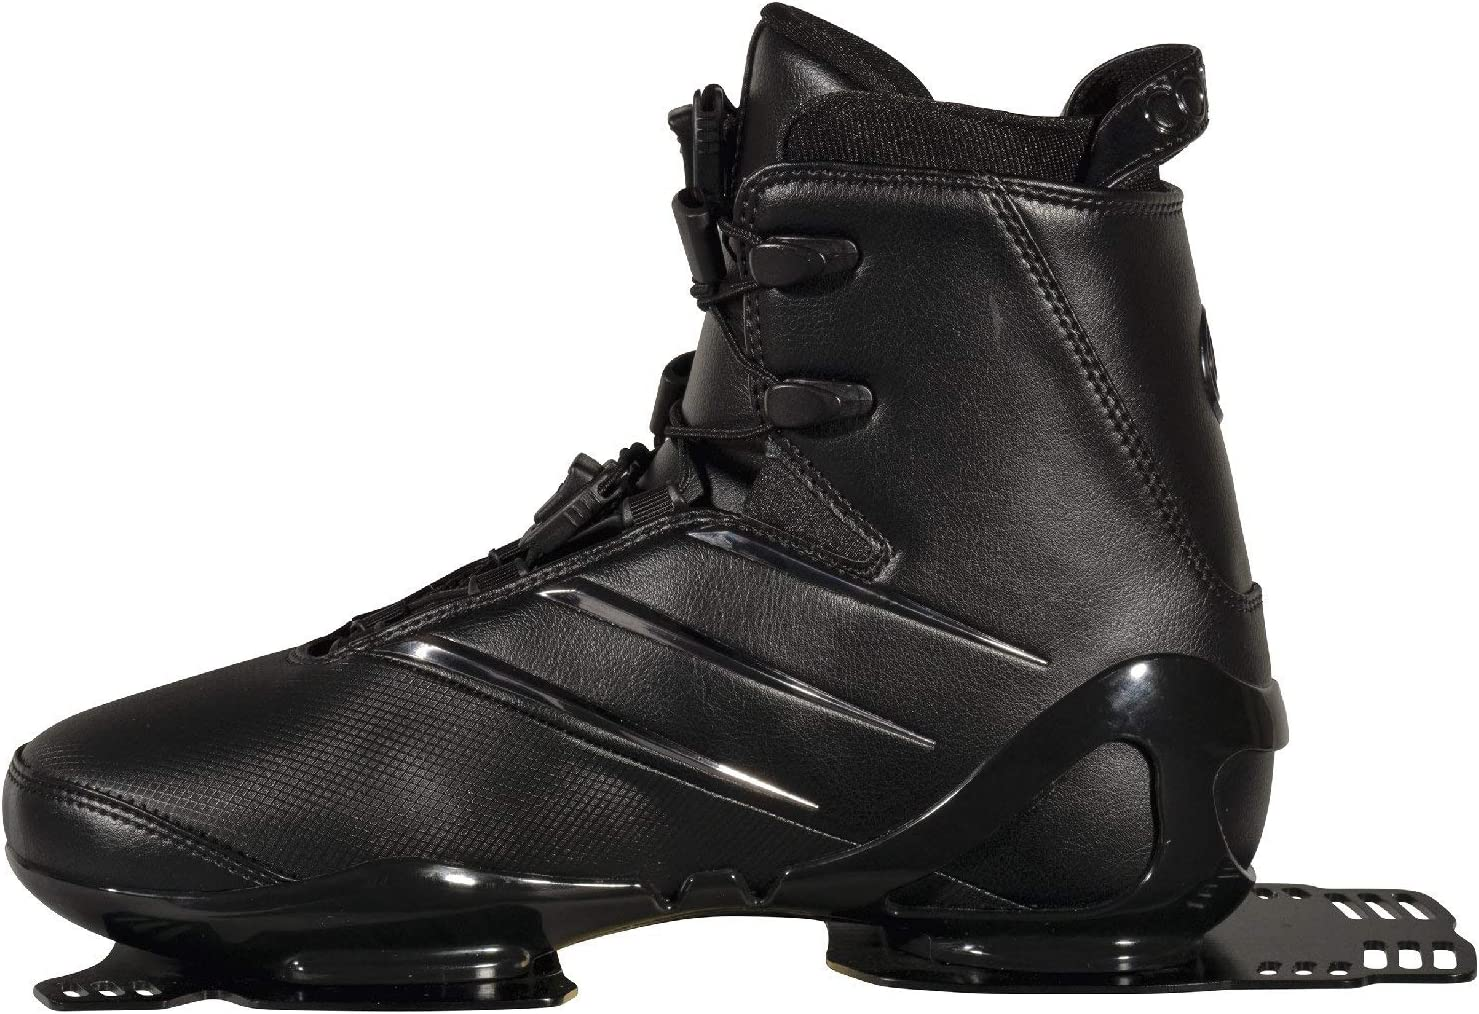 Connelly SALENEW Max 59% OFF very popular 2020 Sync Black Chrome Waterski Boot-Left Rear Small